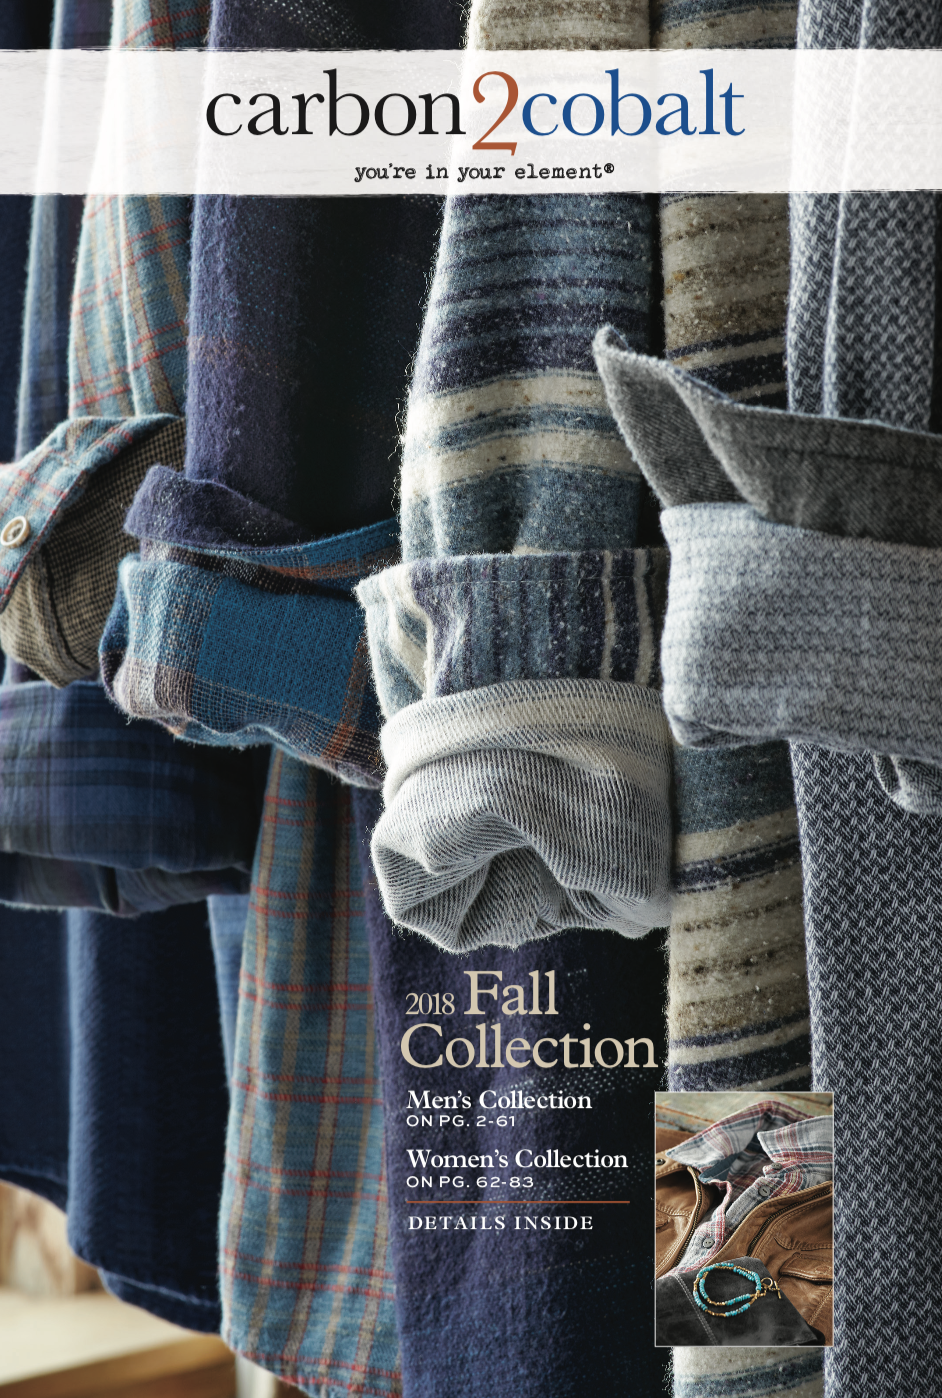 2018 Fall Collection - Discover new elements that you'll love to wear —take a look at our Men's and Women's collection for the upcoming Fall season. Filled with details you love and won't find anywhere else.